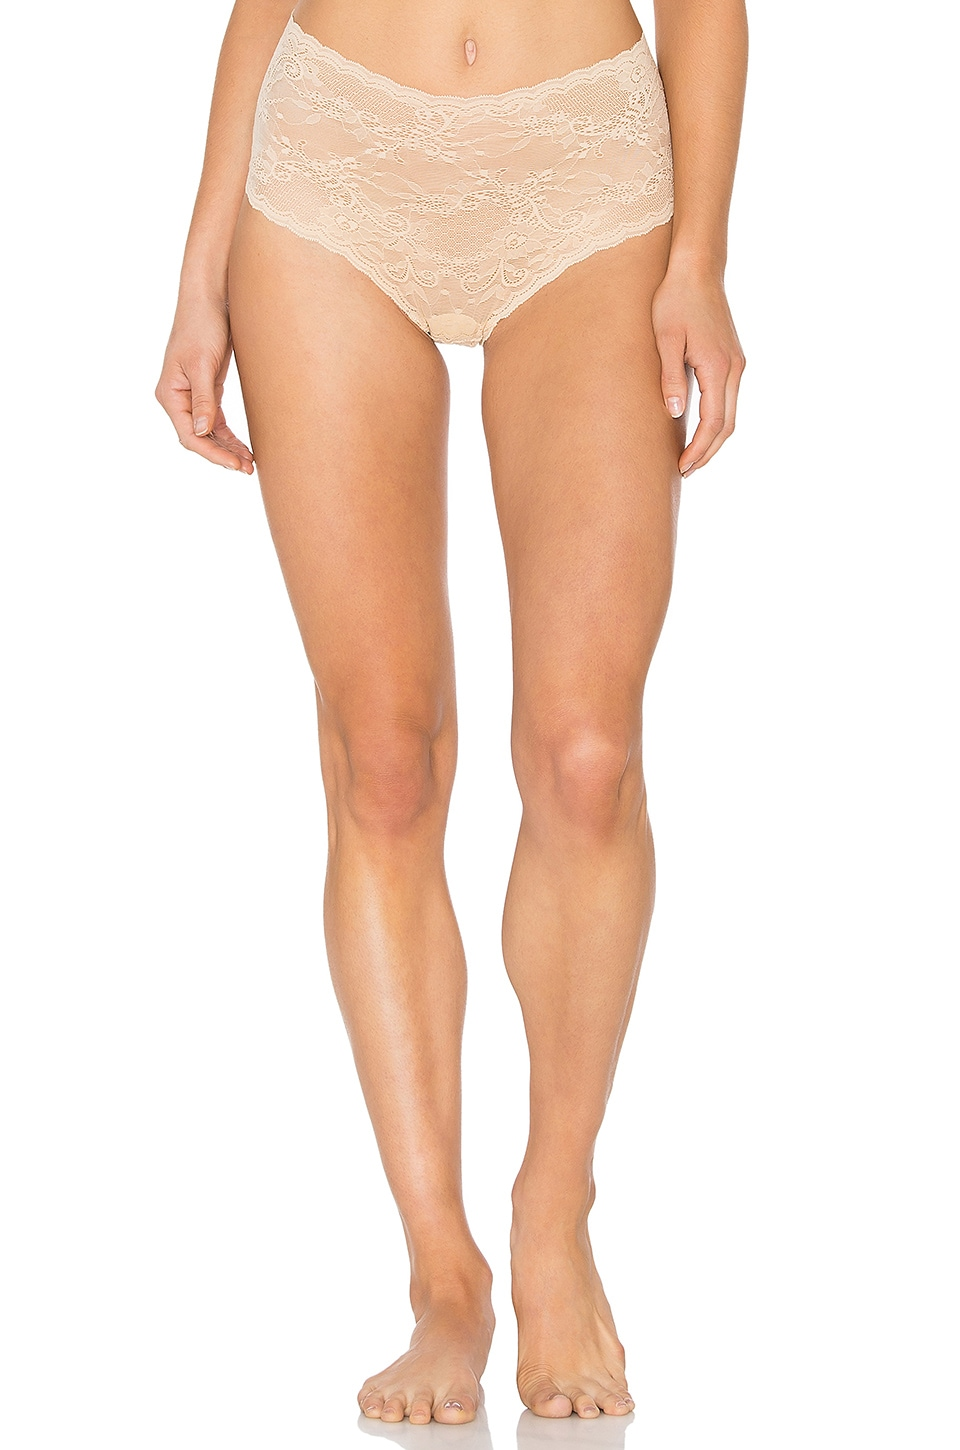 Cosabella Trenta High Rise Thong in Nude